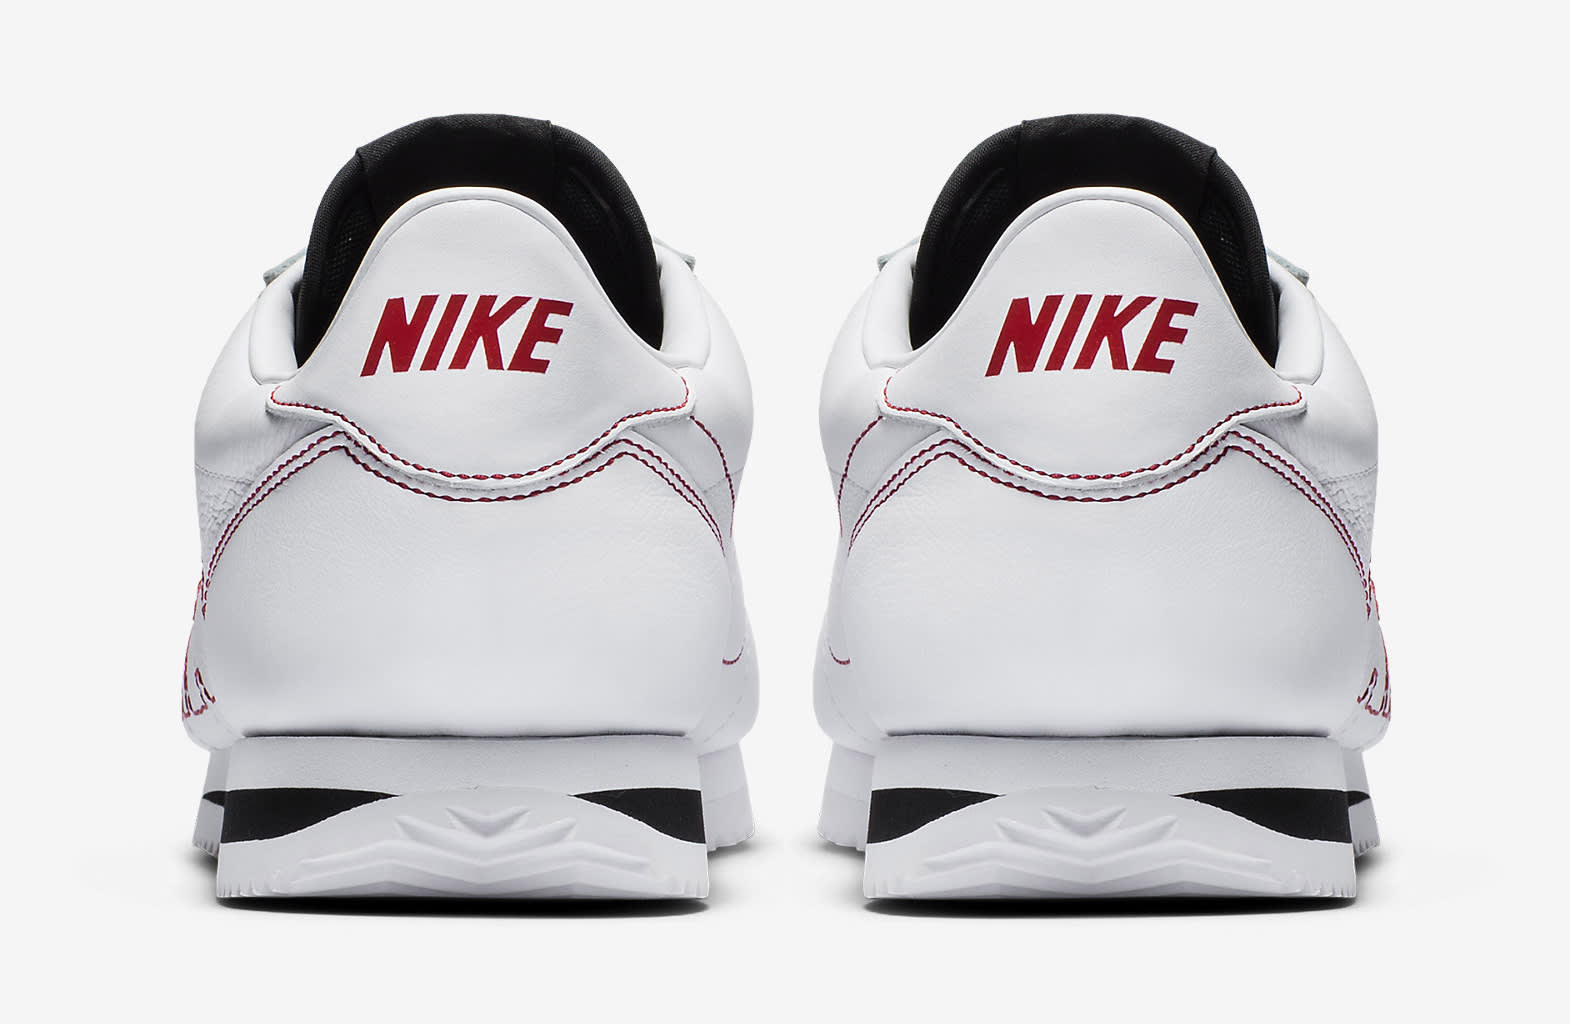 low priced 0a74e 8be6a get nike cortez customized rapper 0c7f5 24ad2